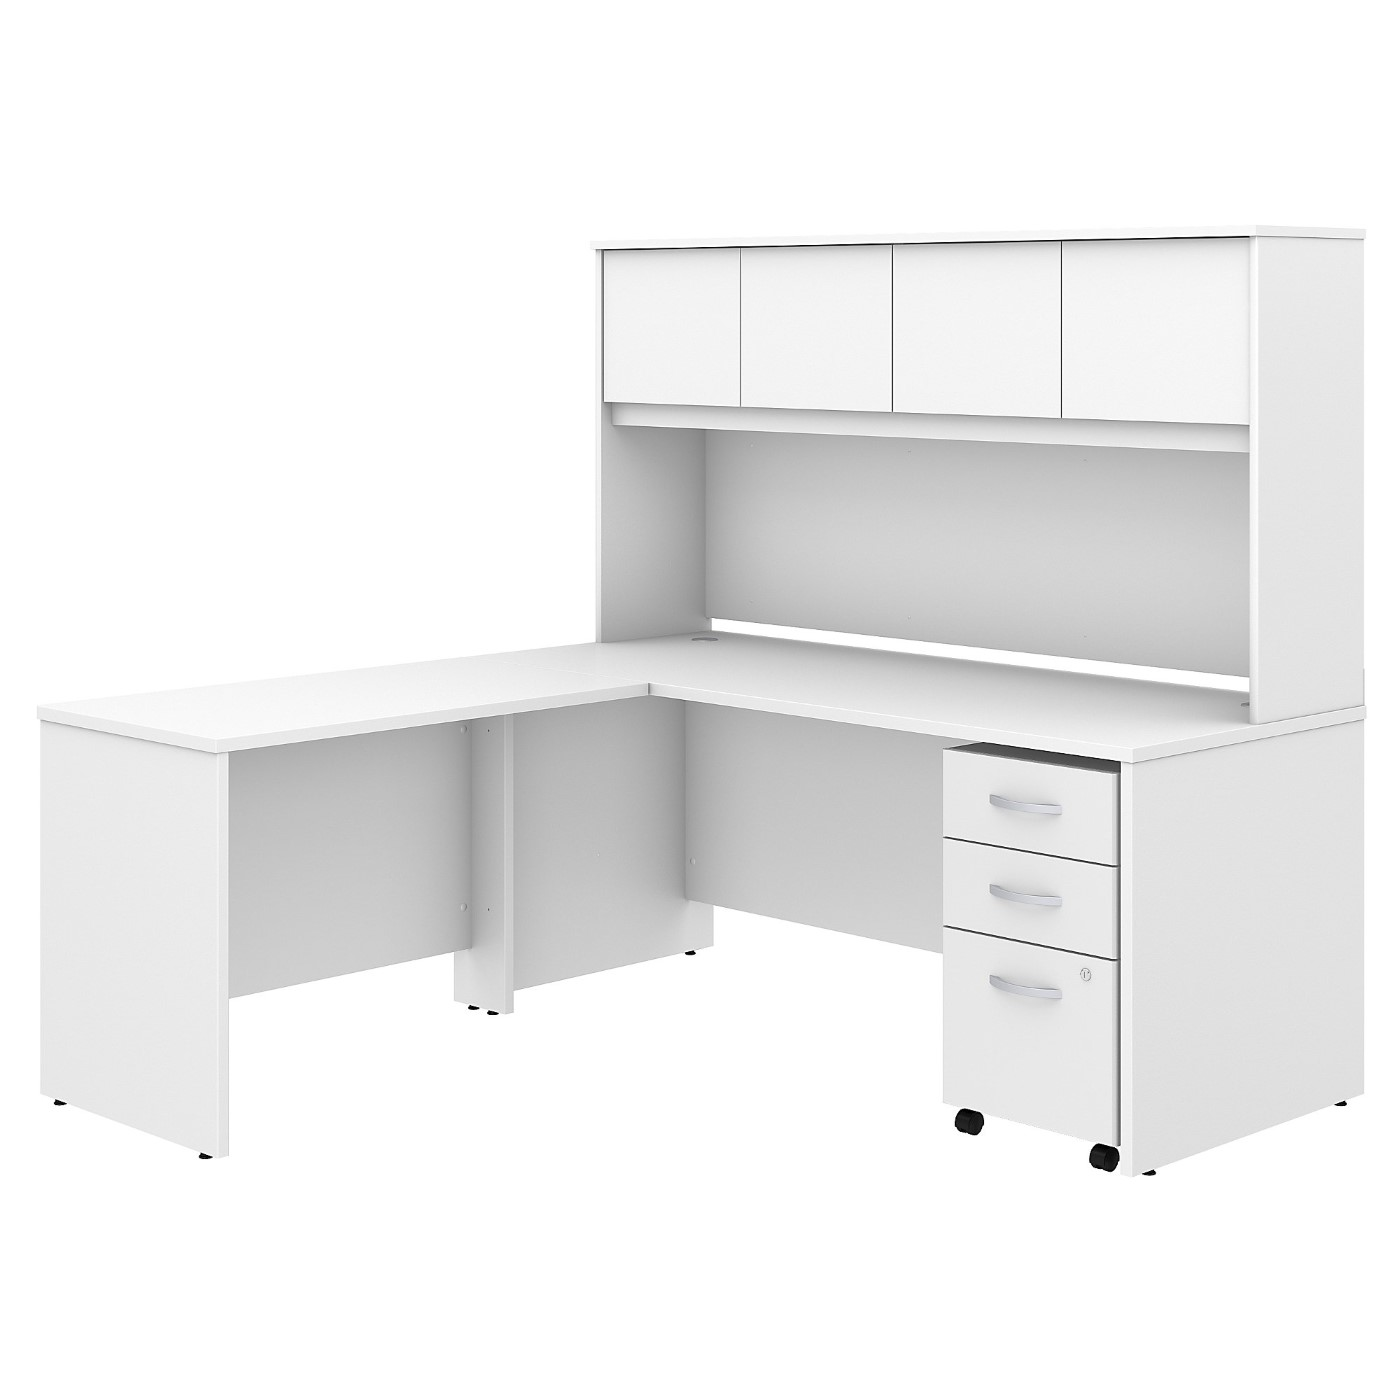 BUSH BUSINESS FURNITURE STUDIO C 72W X 30D L SHAPED DESK WITH HUTCH, MOBILE FILE CABINET AND 42W RETURN. FREE SHIPPING SALE DEDUCT 10% MORE ENTER '10percent' IN COUPON CODE BOX WHILE CHECKING OUT.